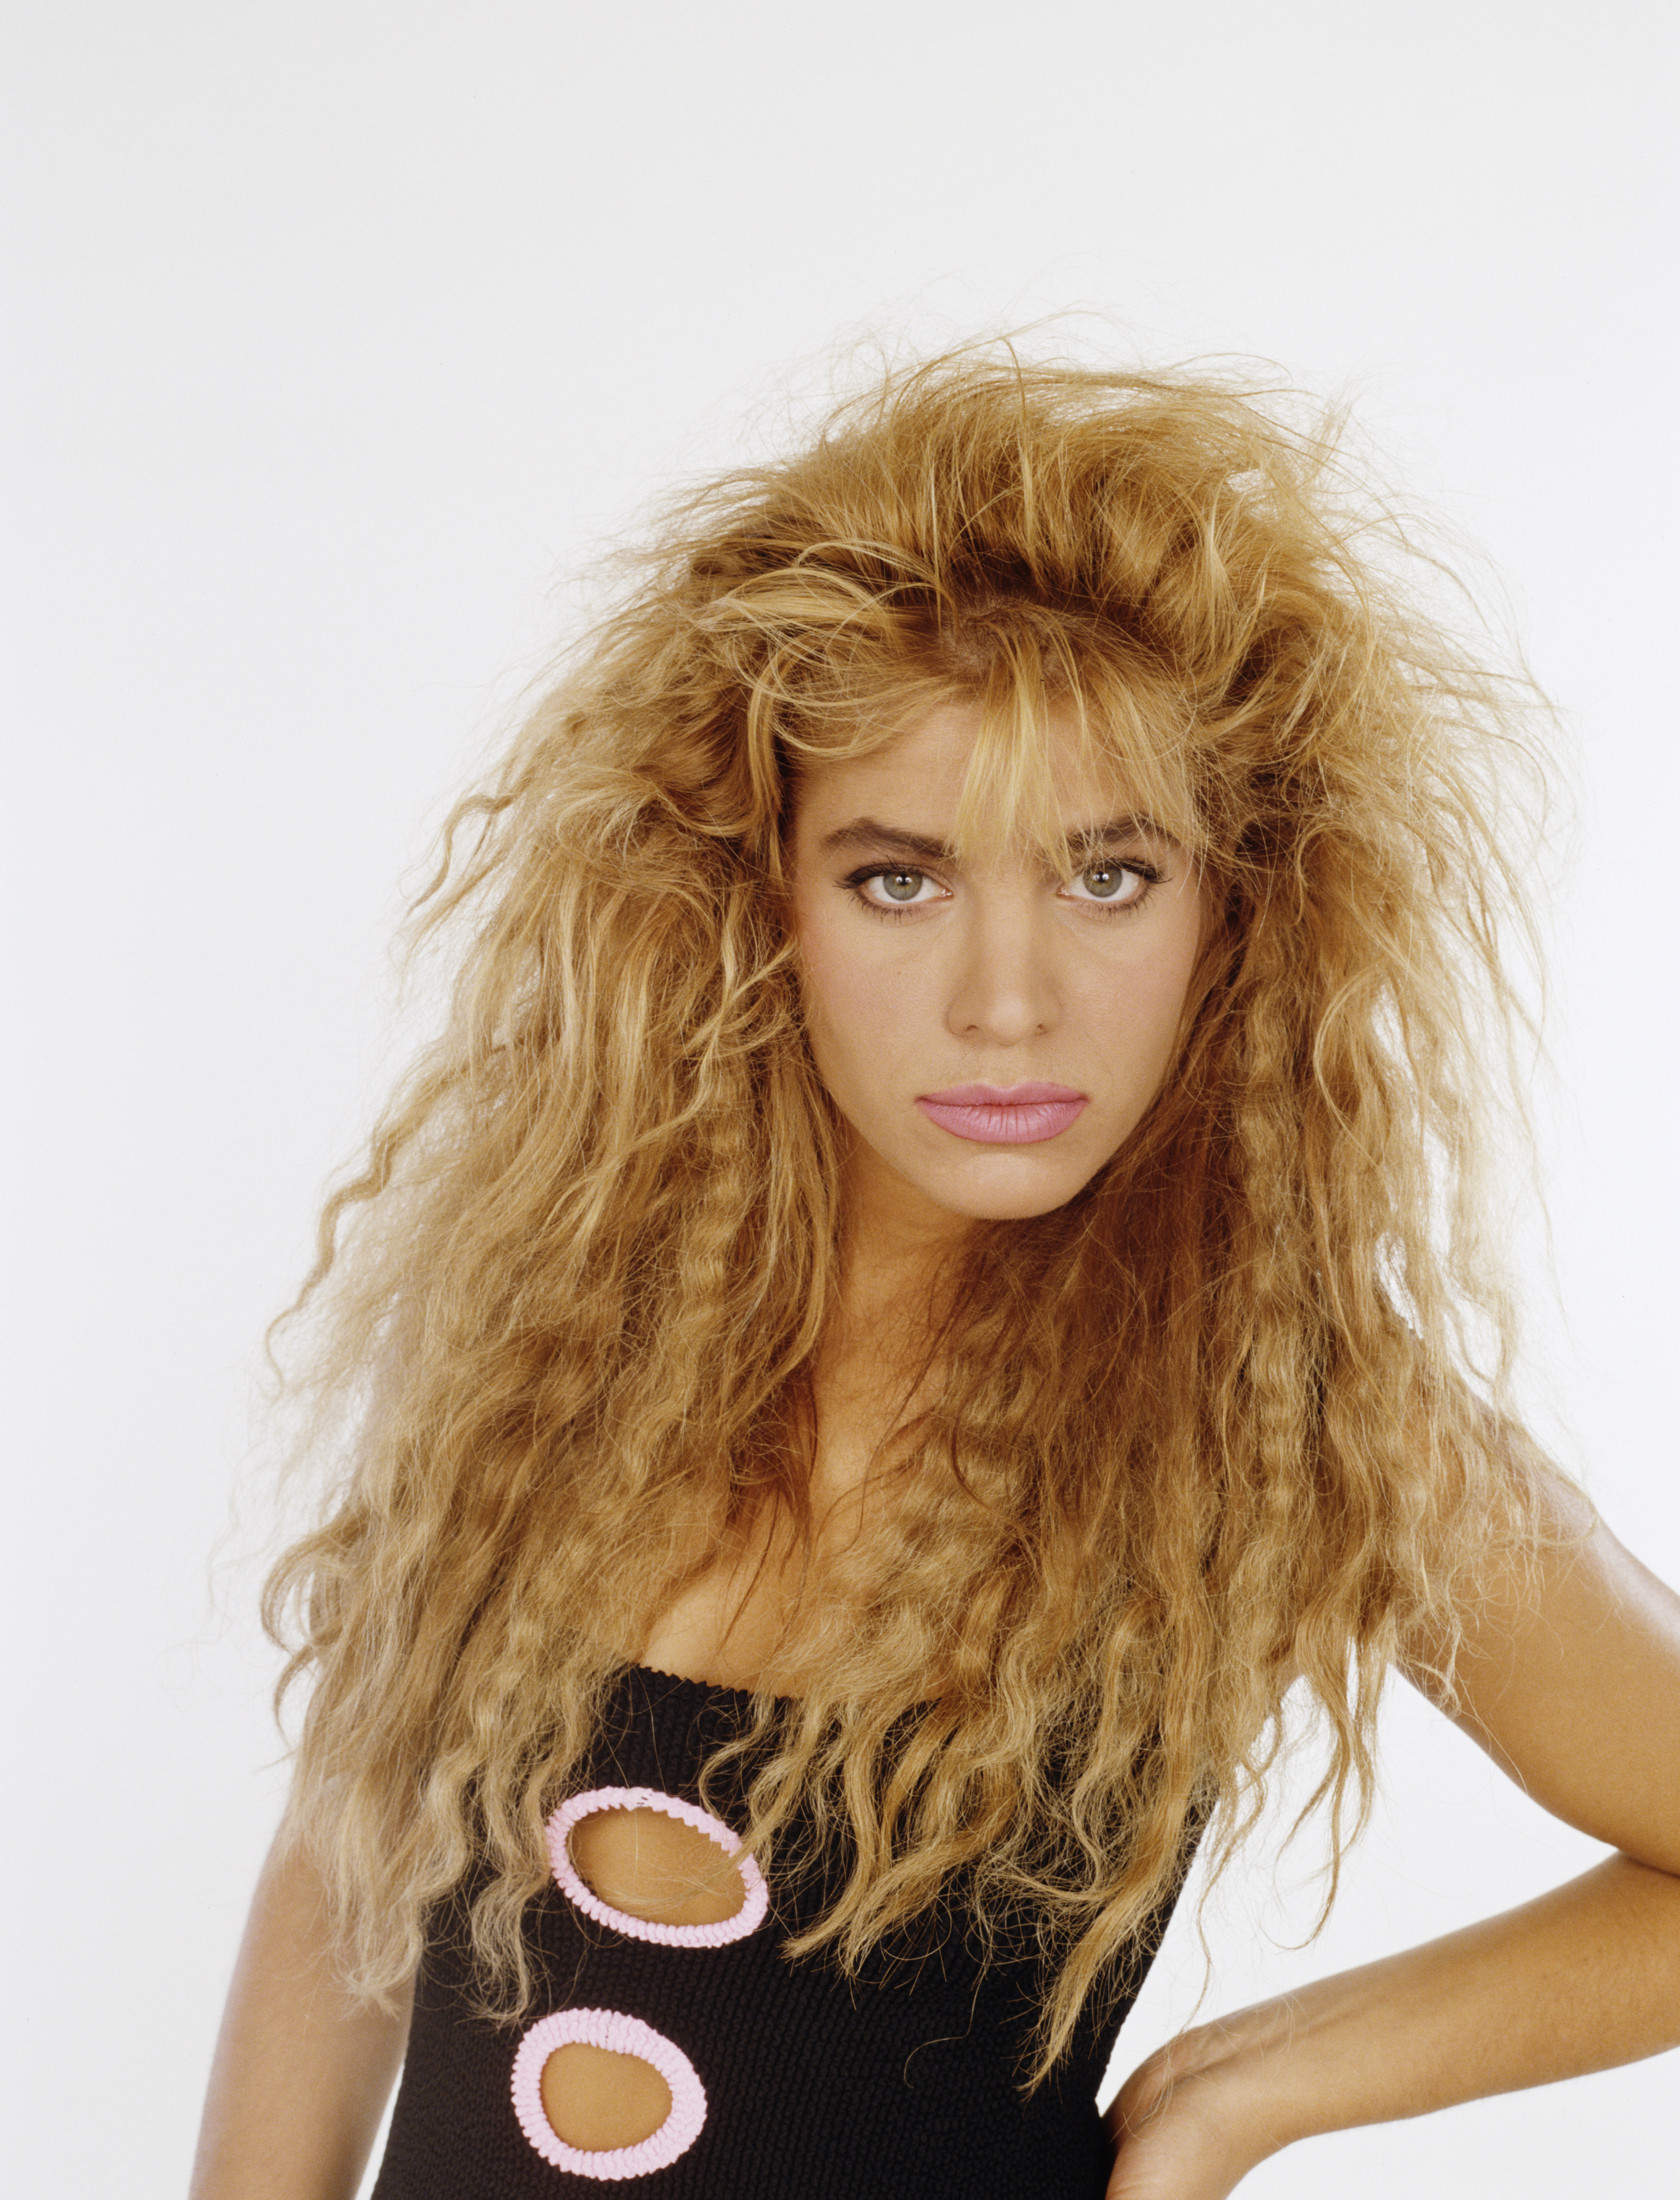 Stupendous Bad 3980S Beauty Trends Embarrassing Eighties Hairstyles And Hairstyle Inspiration Daily Dogsangcom